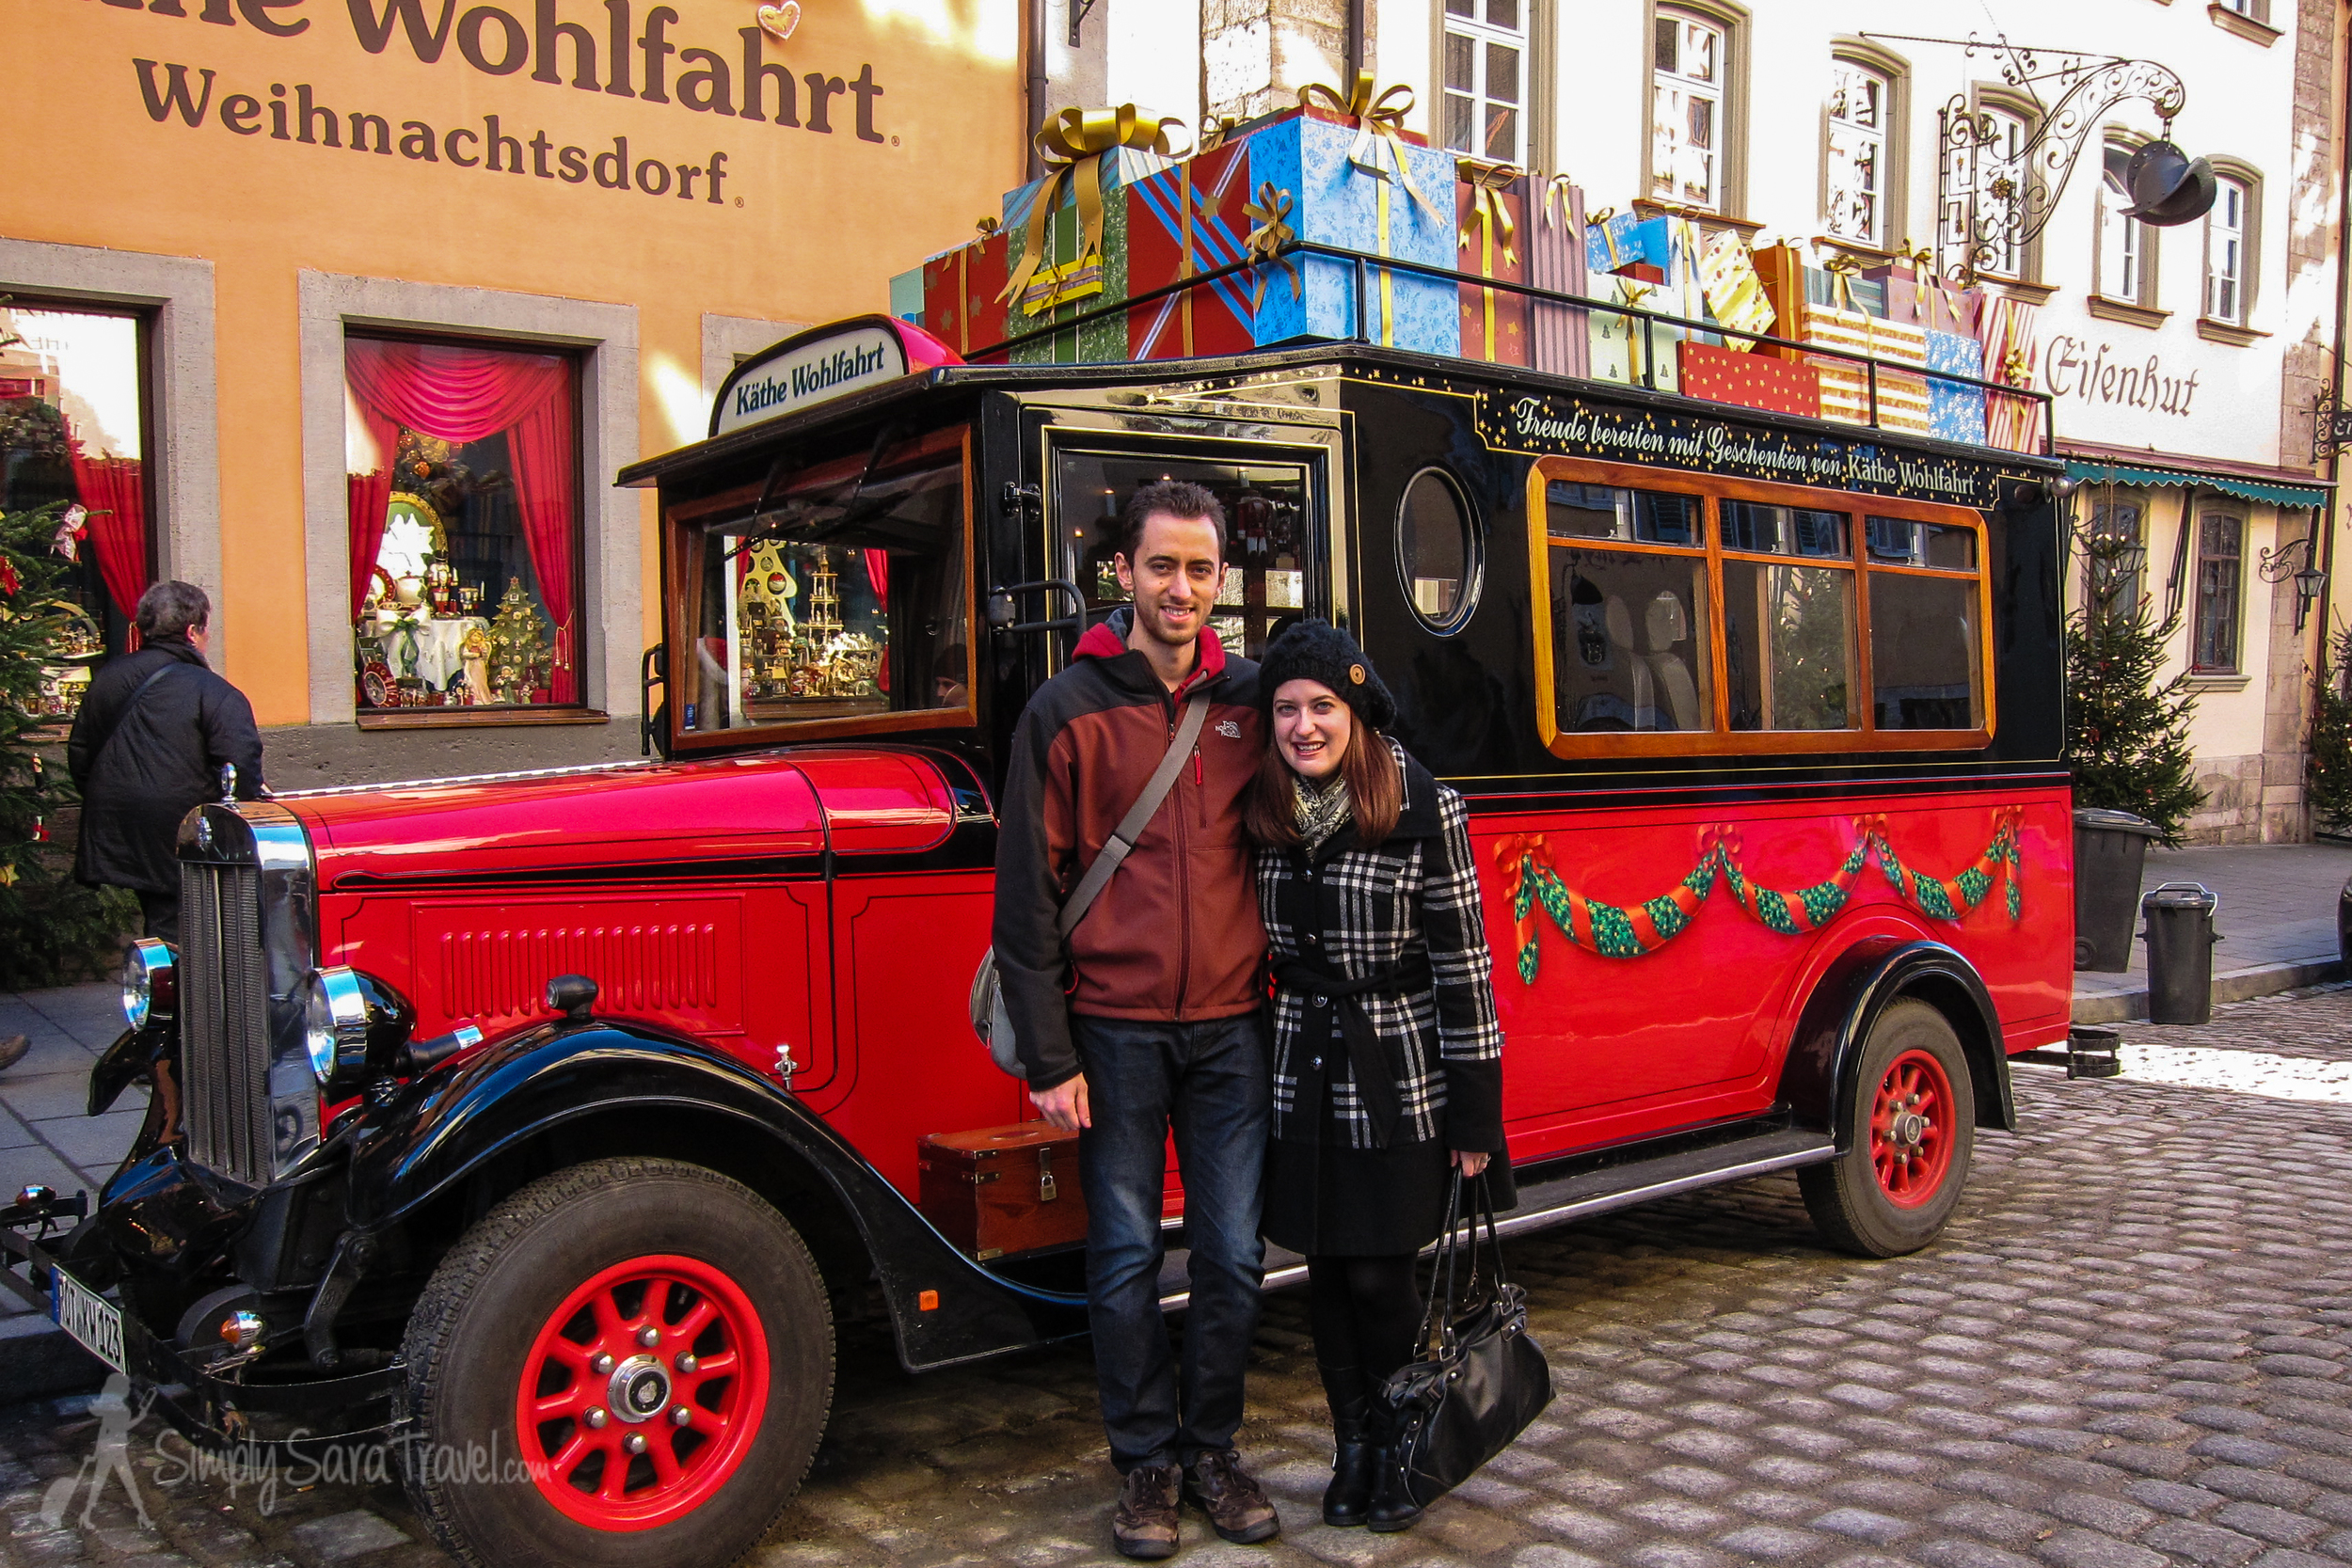 Bring your love along for a romantic weekend in December to Rothenburg ob der Tauber!